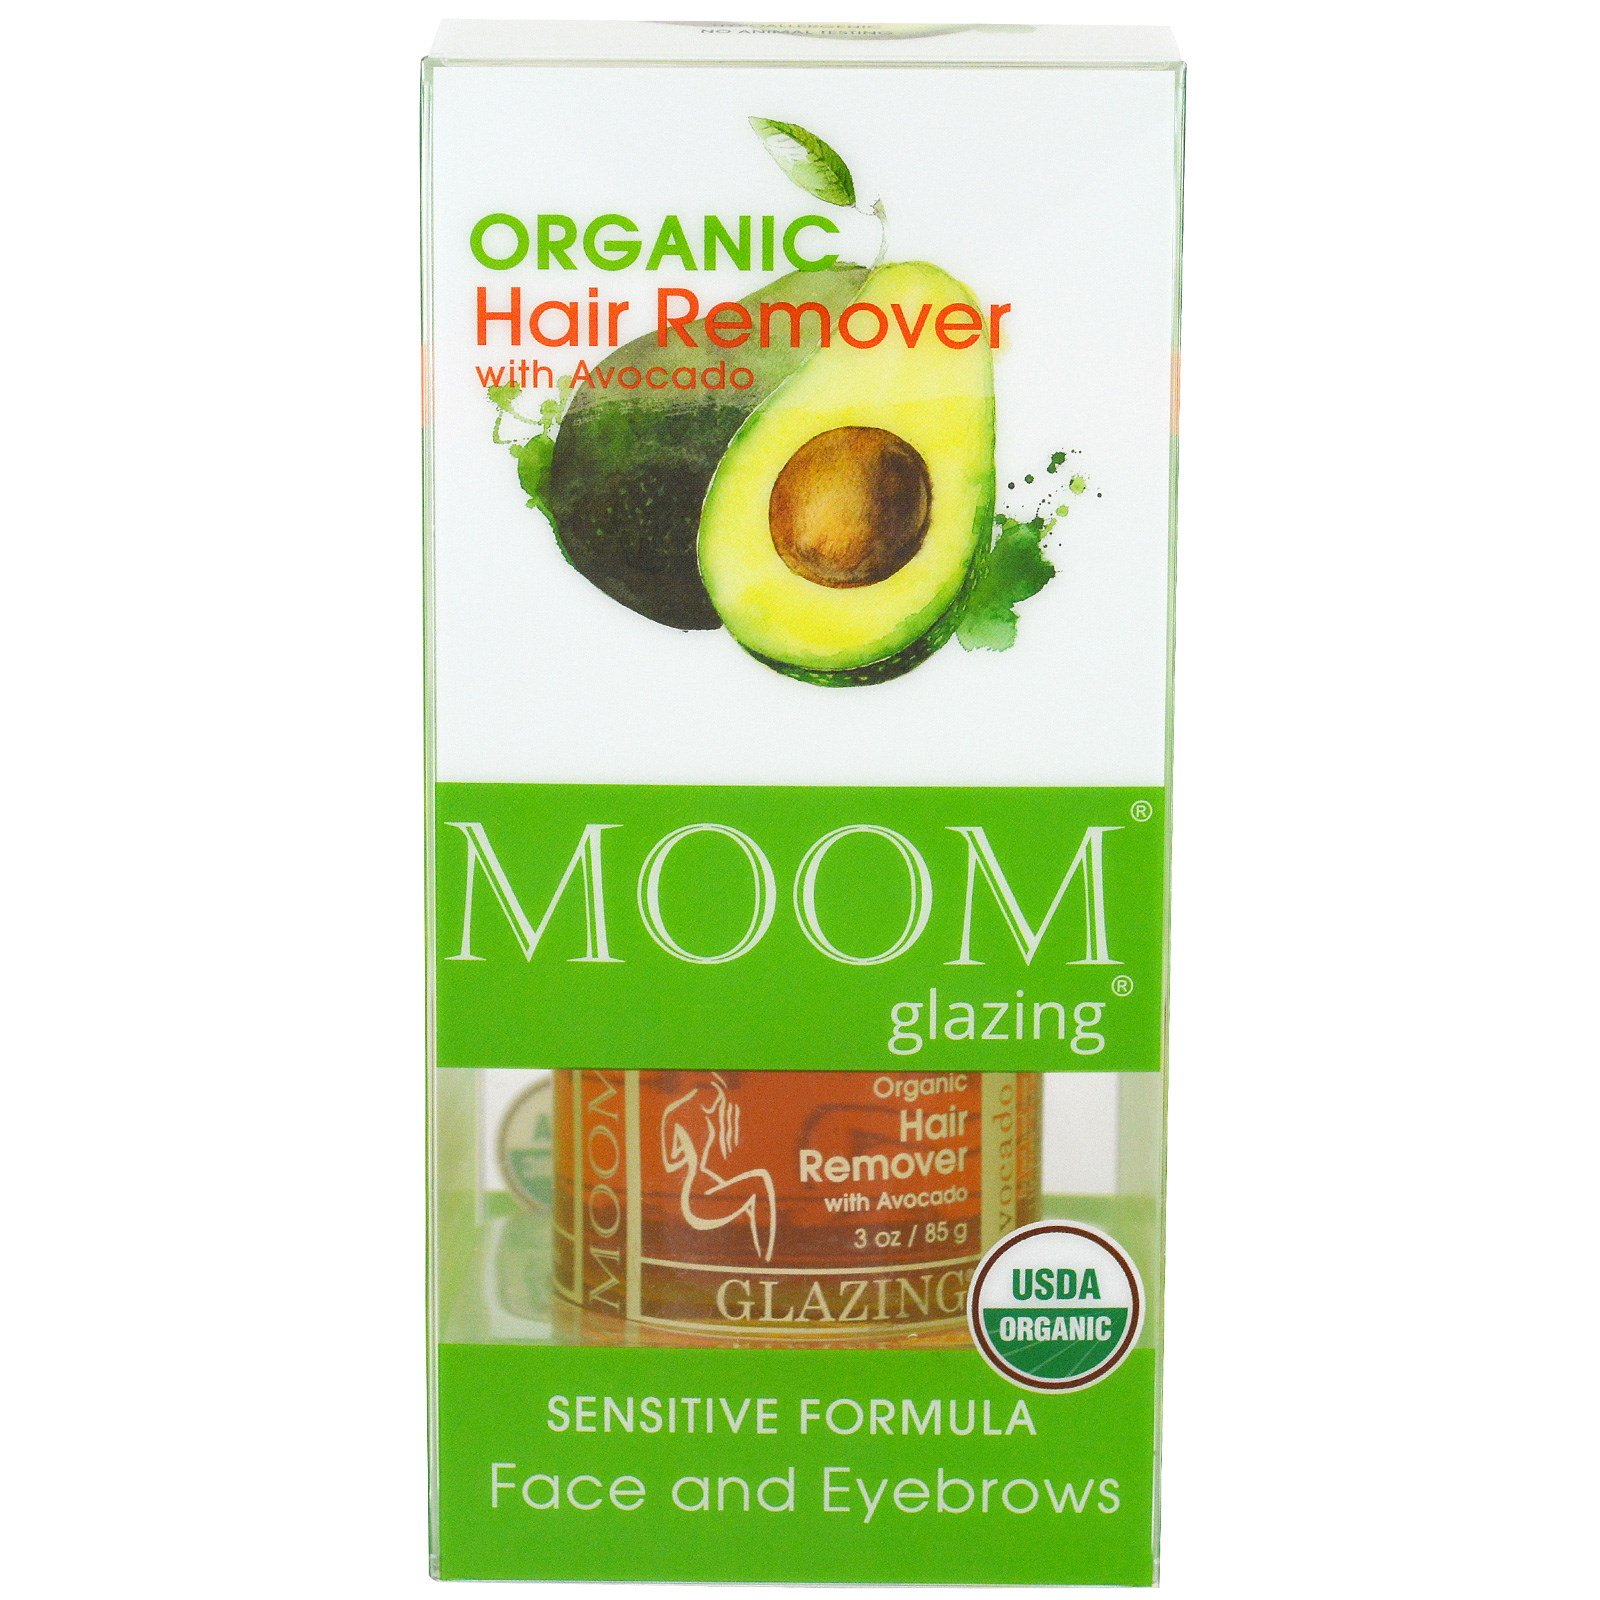 Best facial hair remover moom